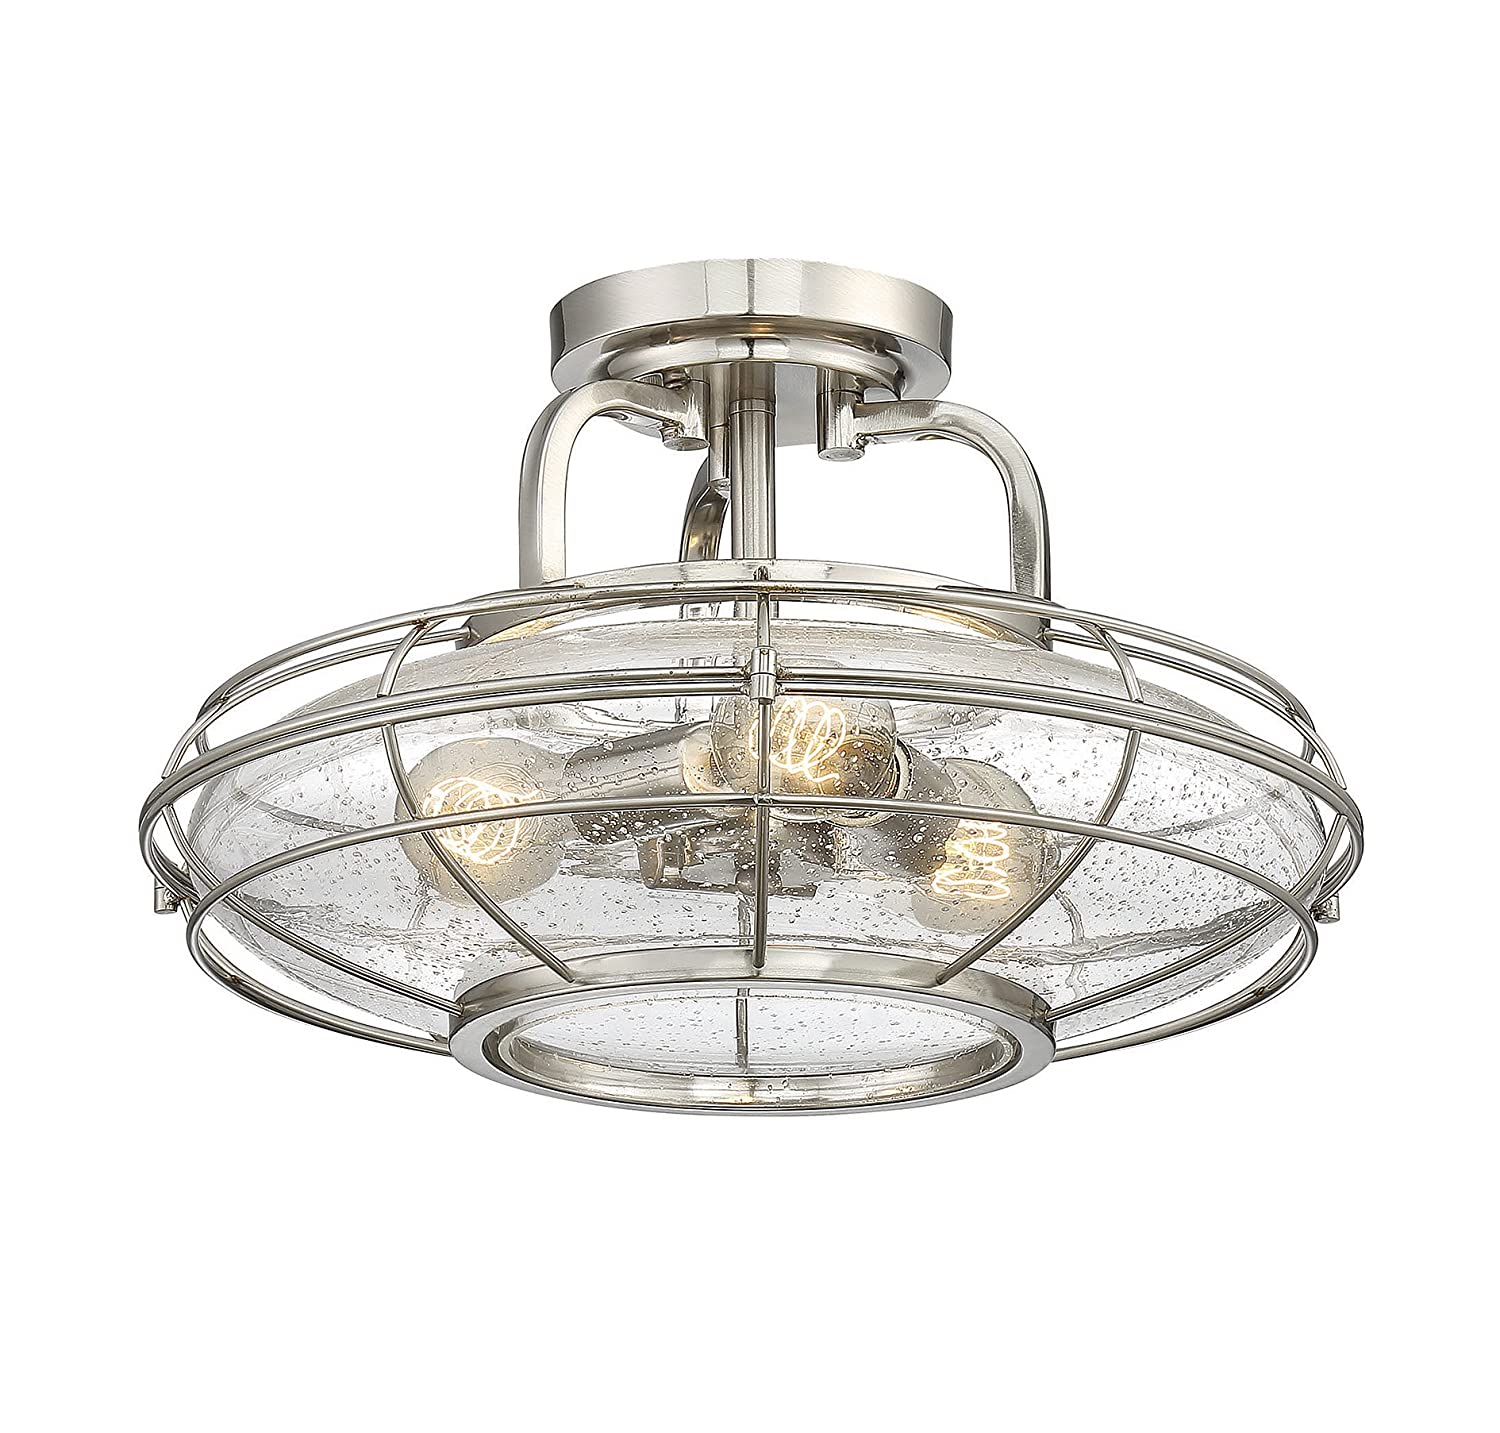 Savoy House 6 574 3 13 Connell 3 Light Semi Flush in English